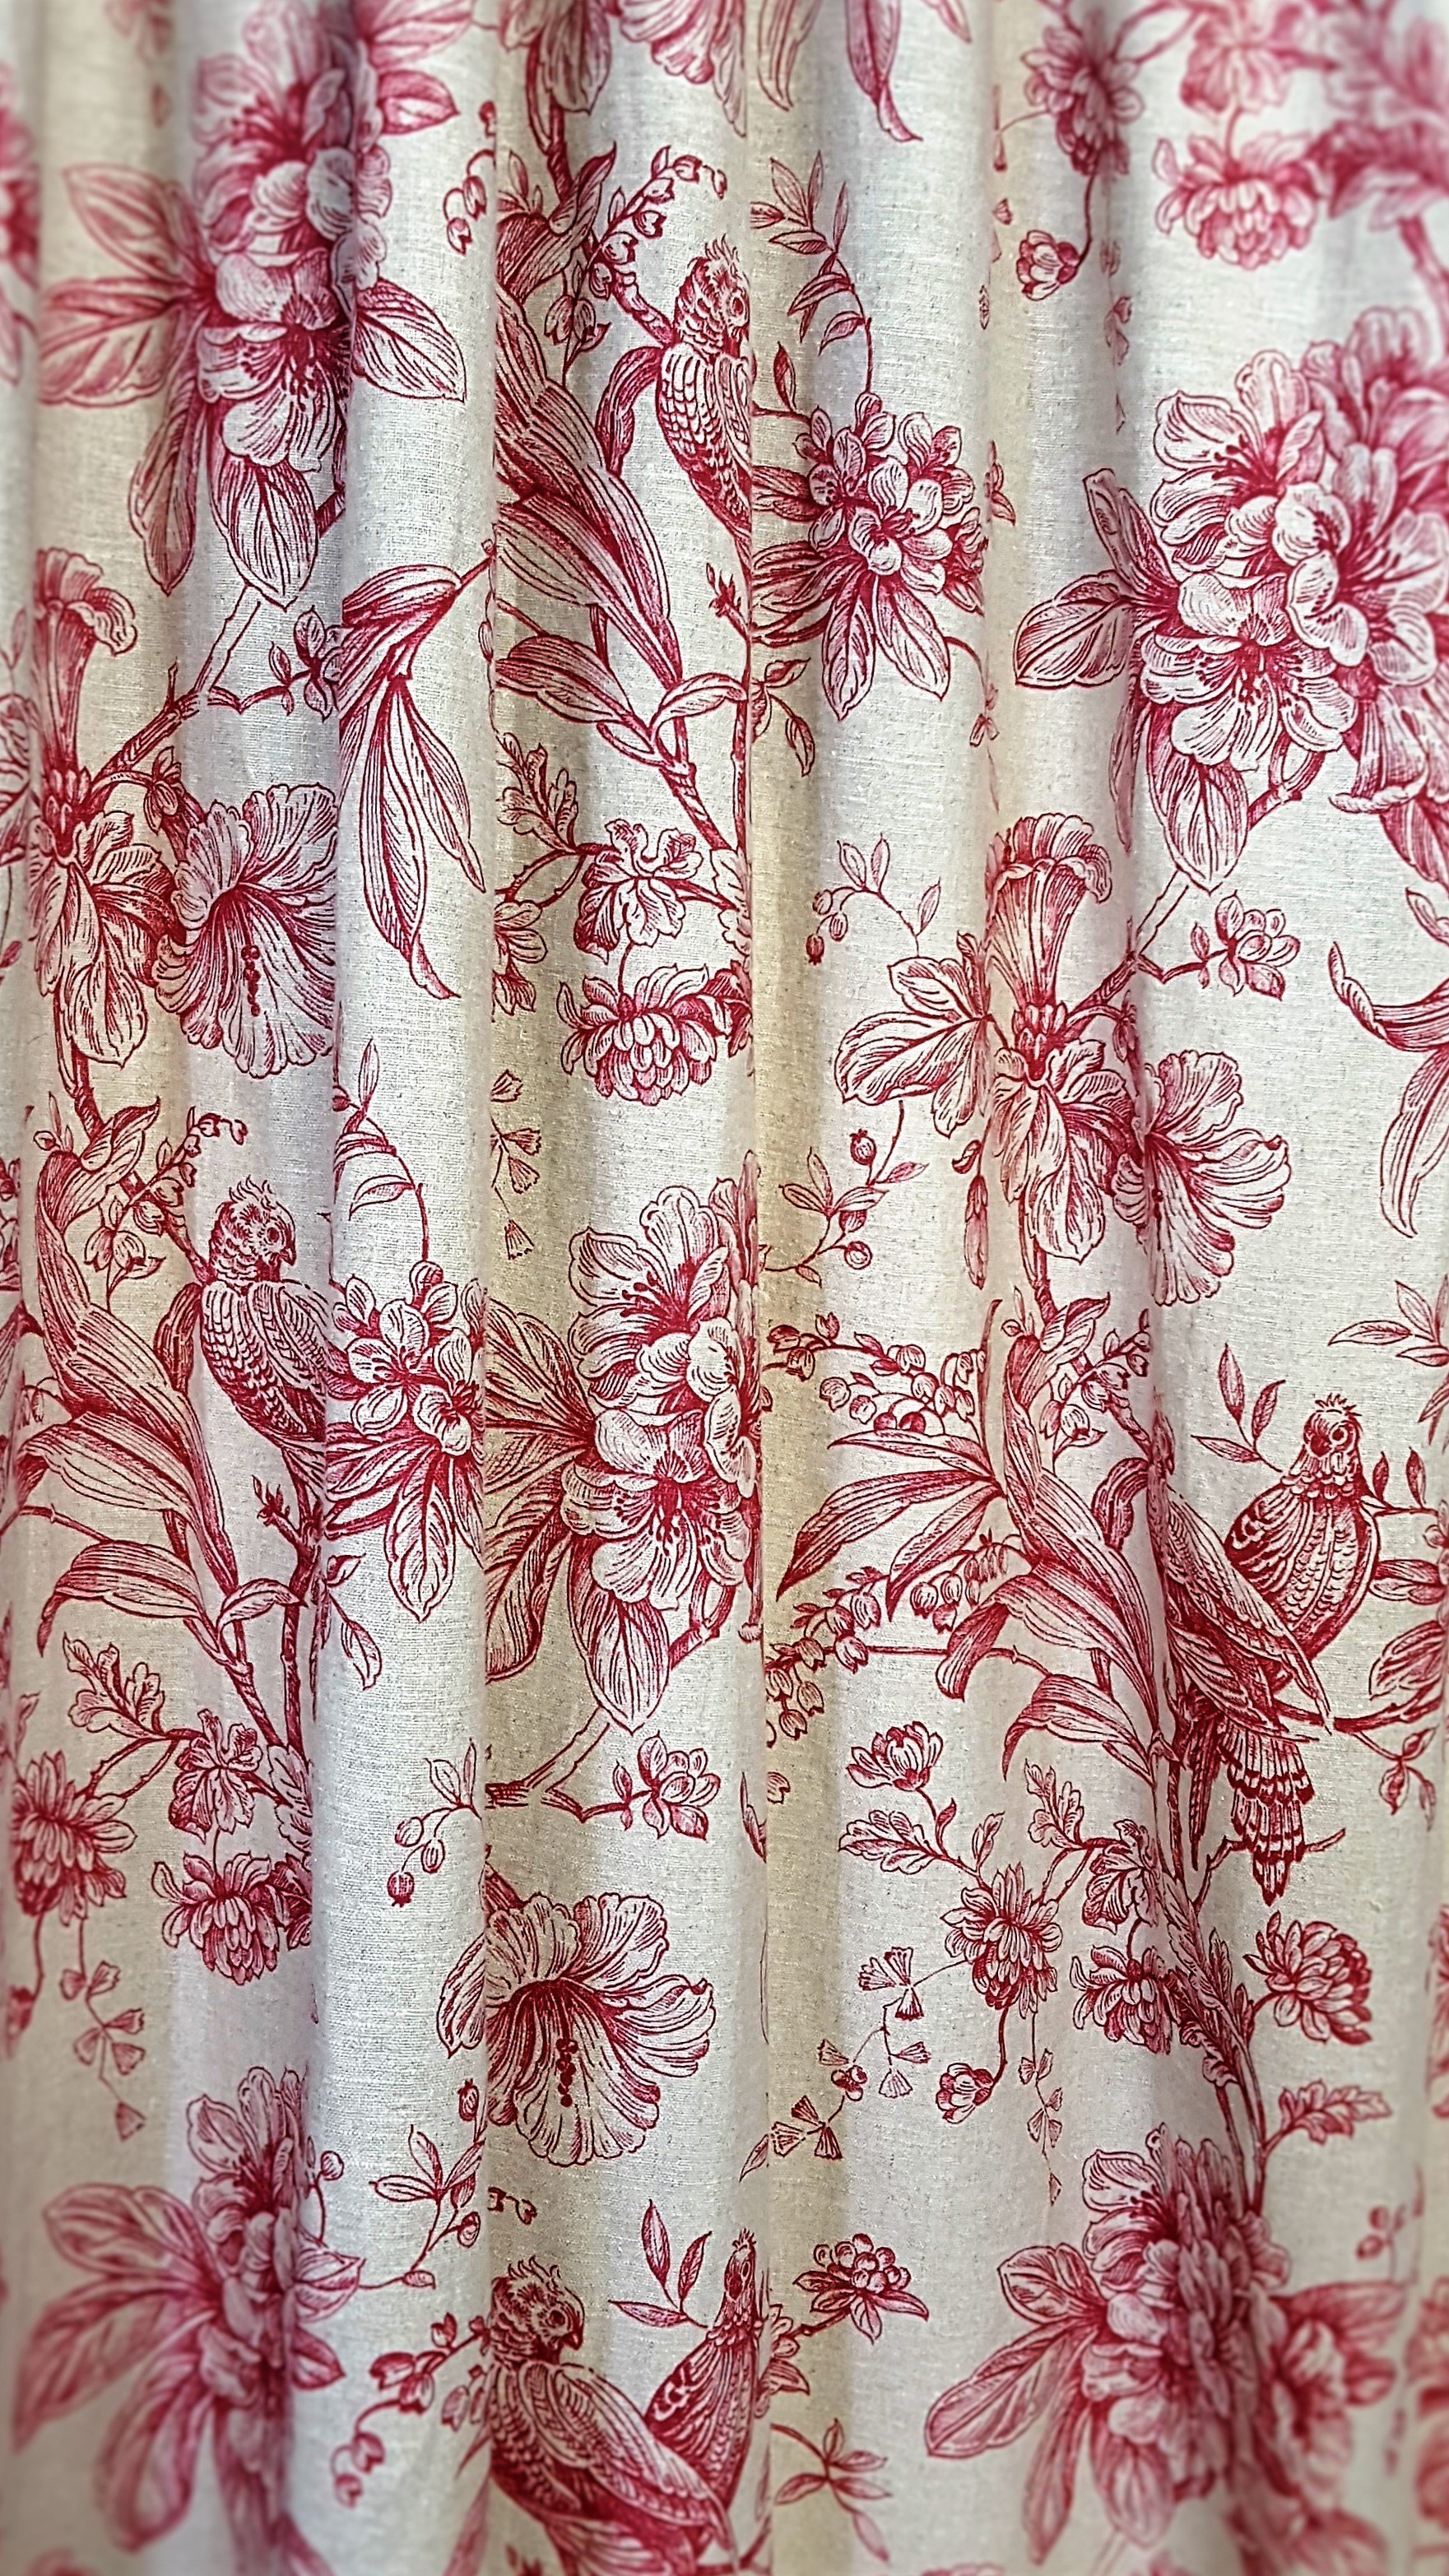 Installed printed curtains